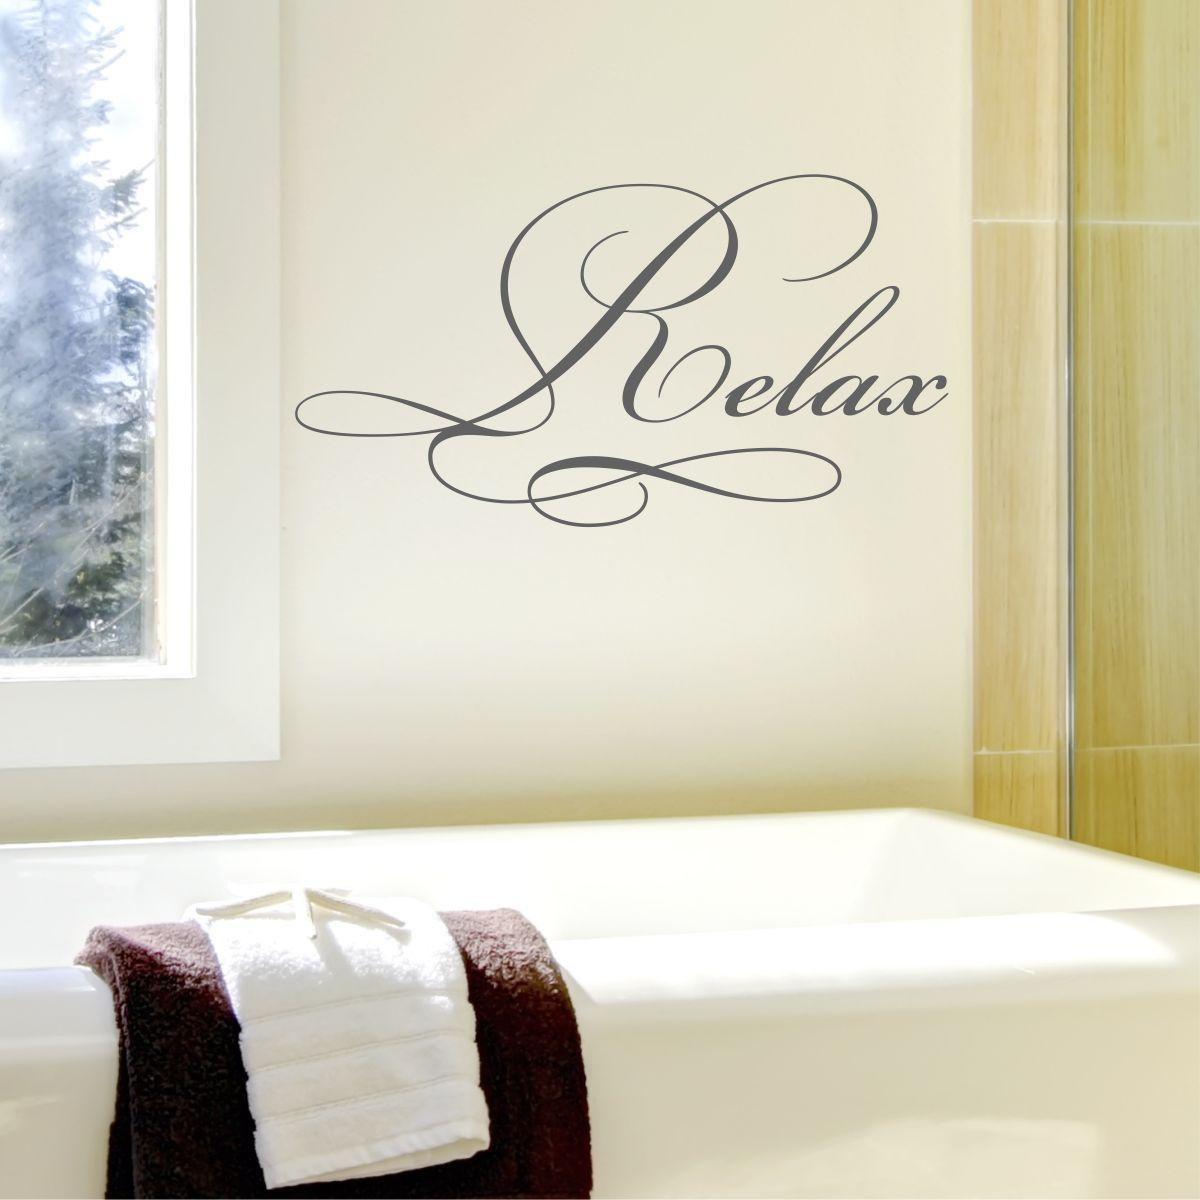 relax elegant wall quotes u2122 decal